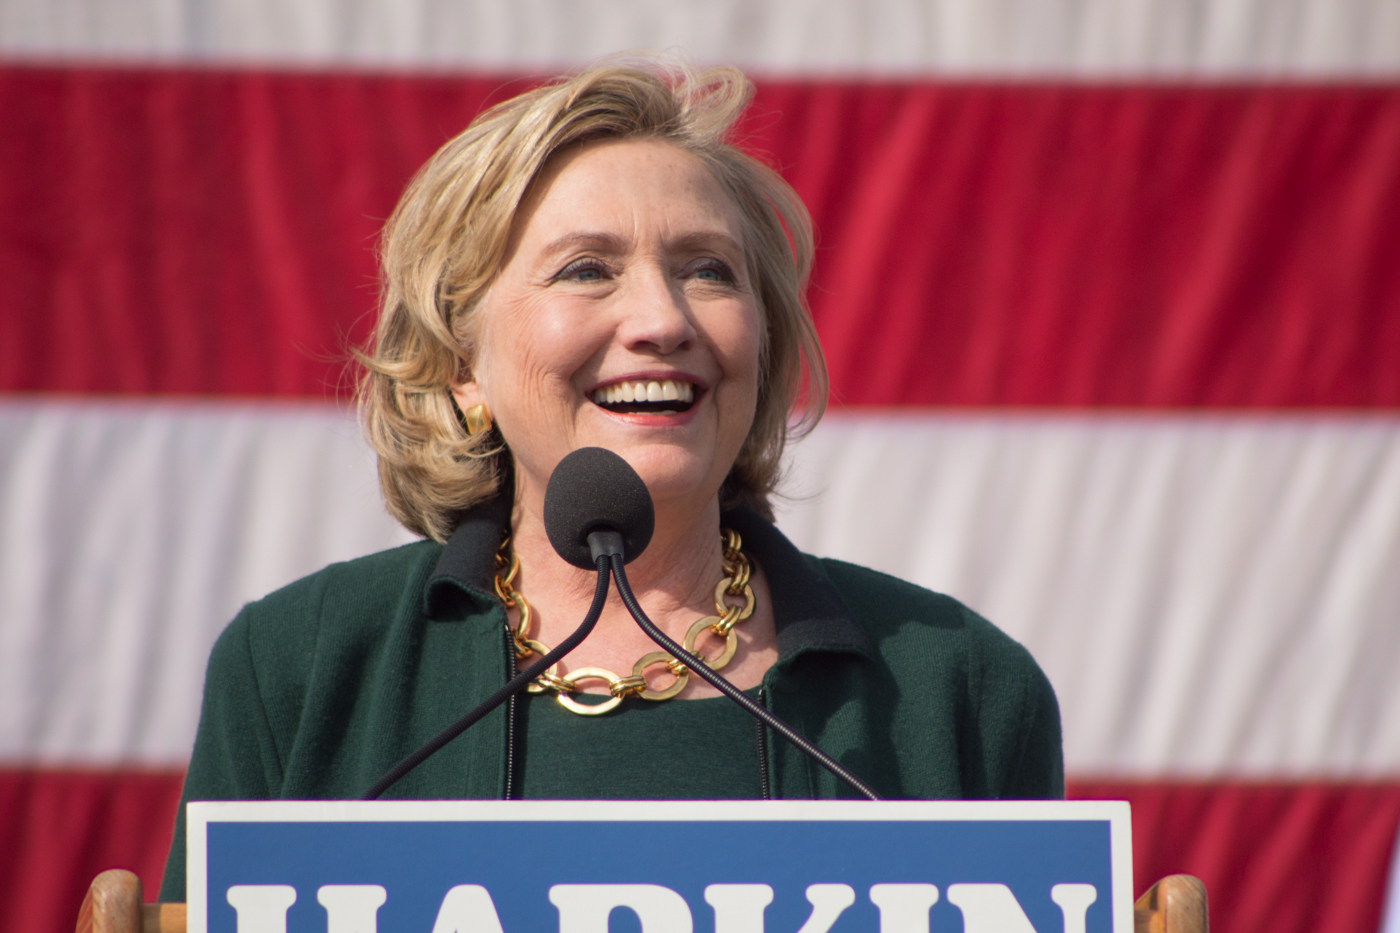 Hillary Clinton speaks at the 2014 Harkin Steak Fry in Indianola, IA. Seven months later Clinton announced she would be running for president. (Photo credit: Gregory Hauenstein)